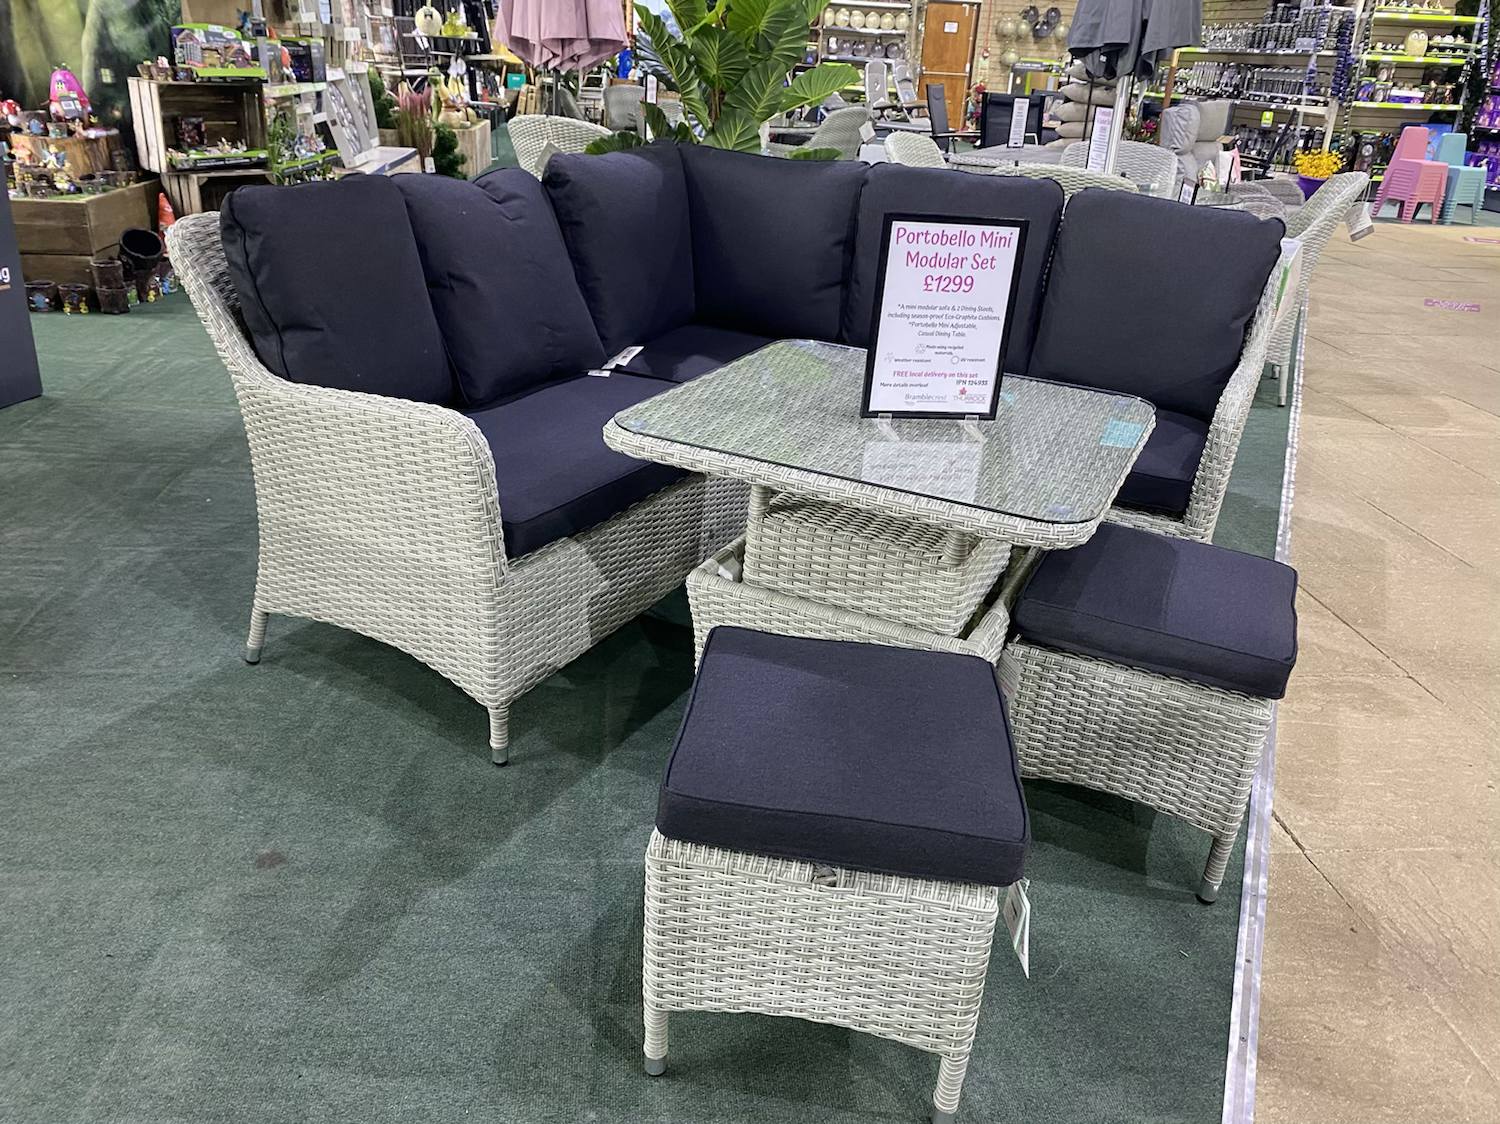 Portobello Mini Modular Set - £1299